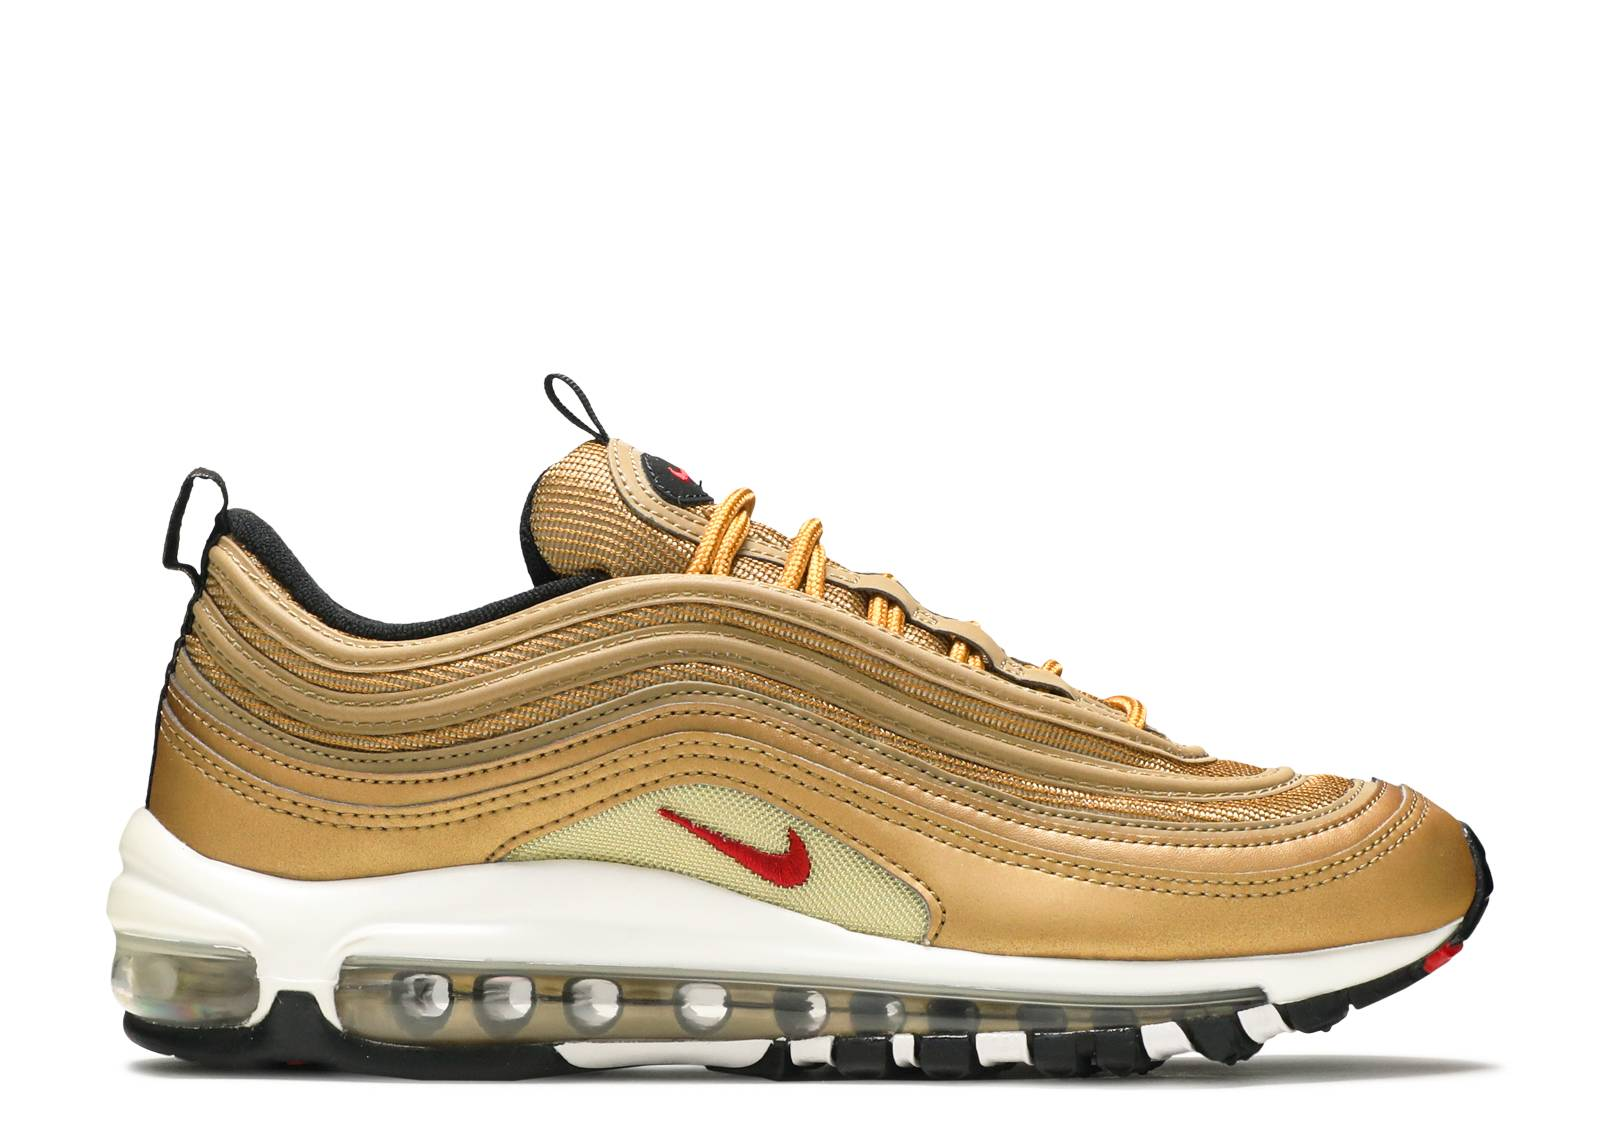 6369f98665 Acquista nike air max 97 oro - OFF38% sconti